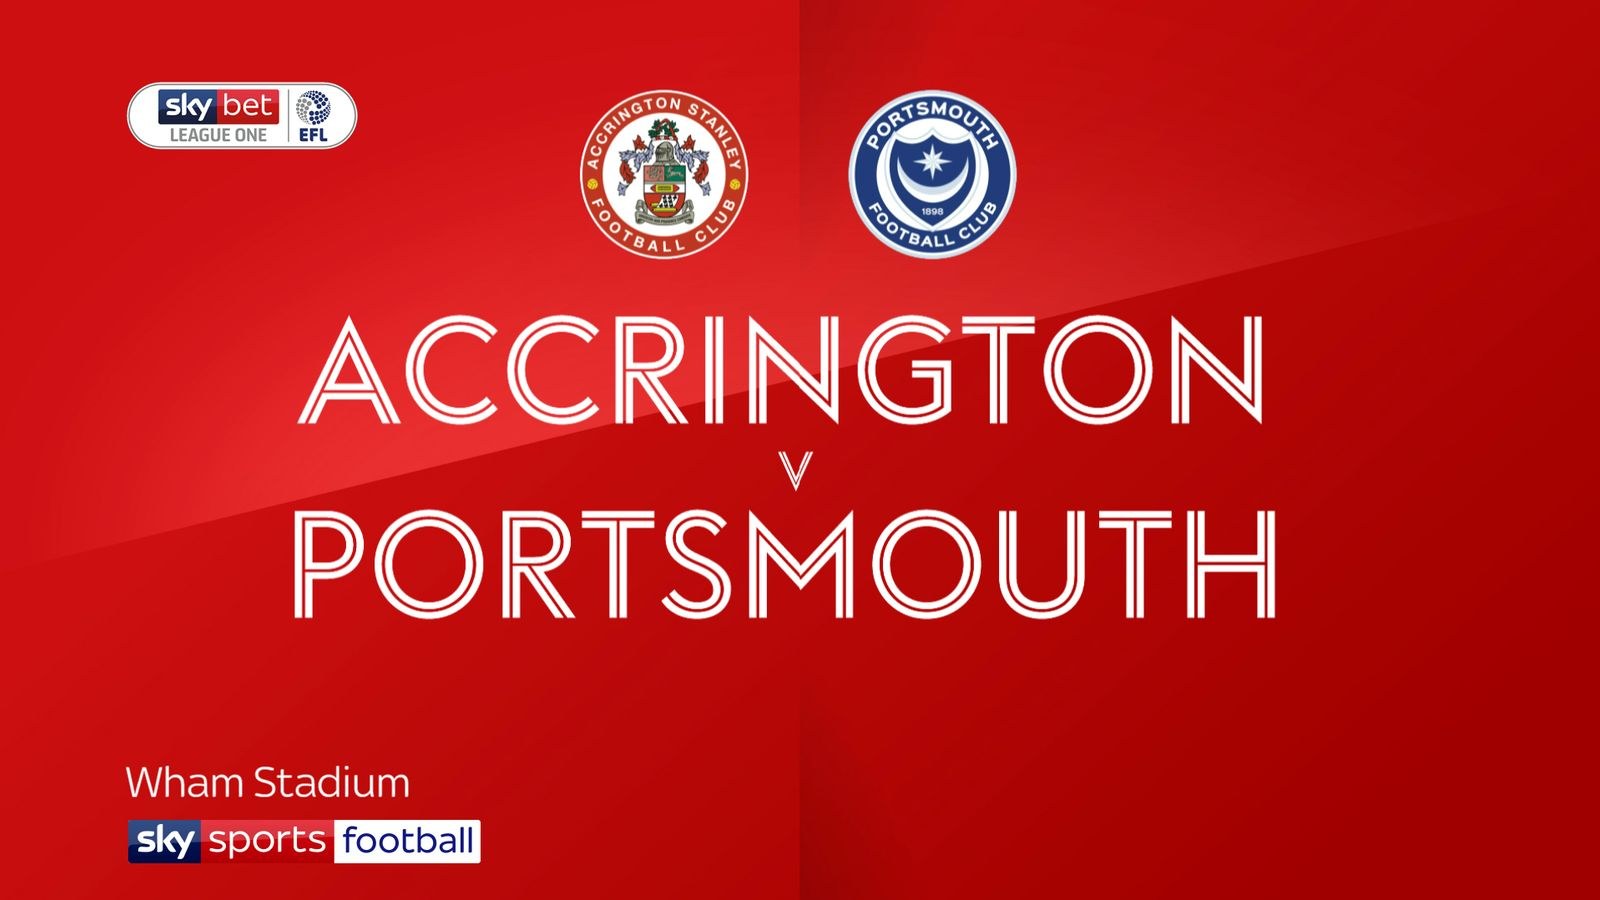 Accrington 4-1 Portsmouth: Colby Bishop brace sinks Pompey